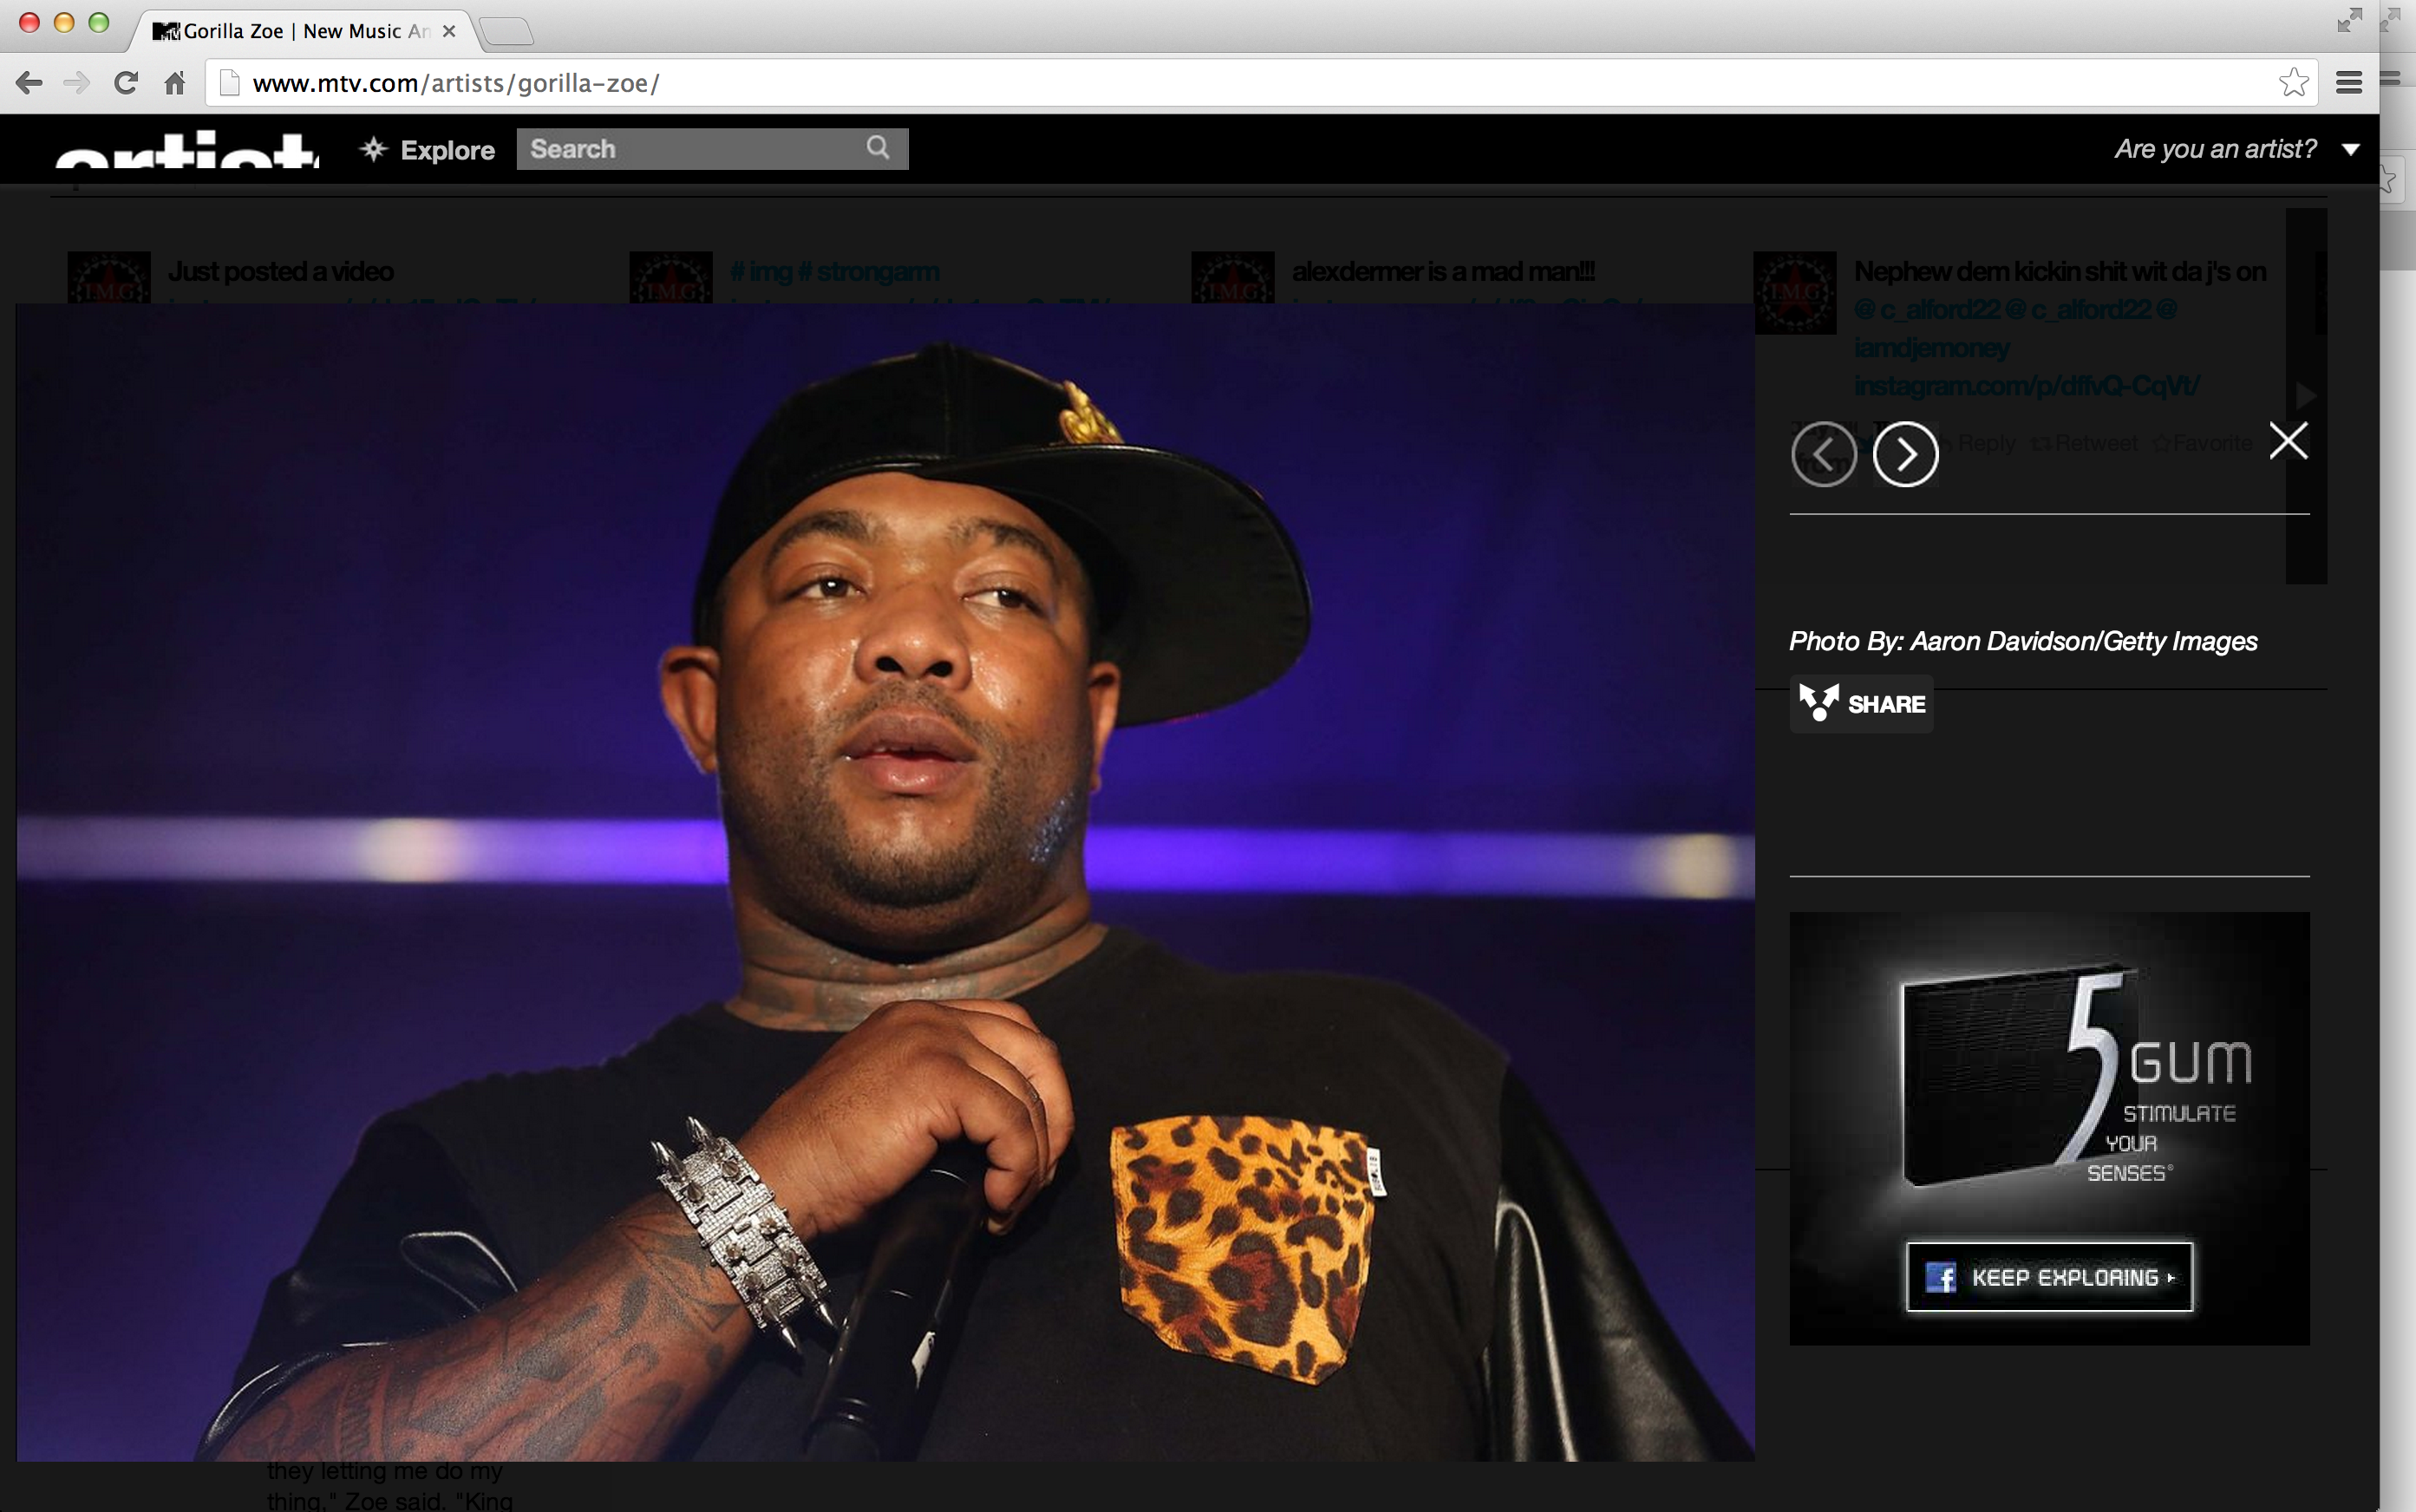 Gorilla Zoe on mtv.com miami